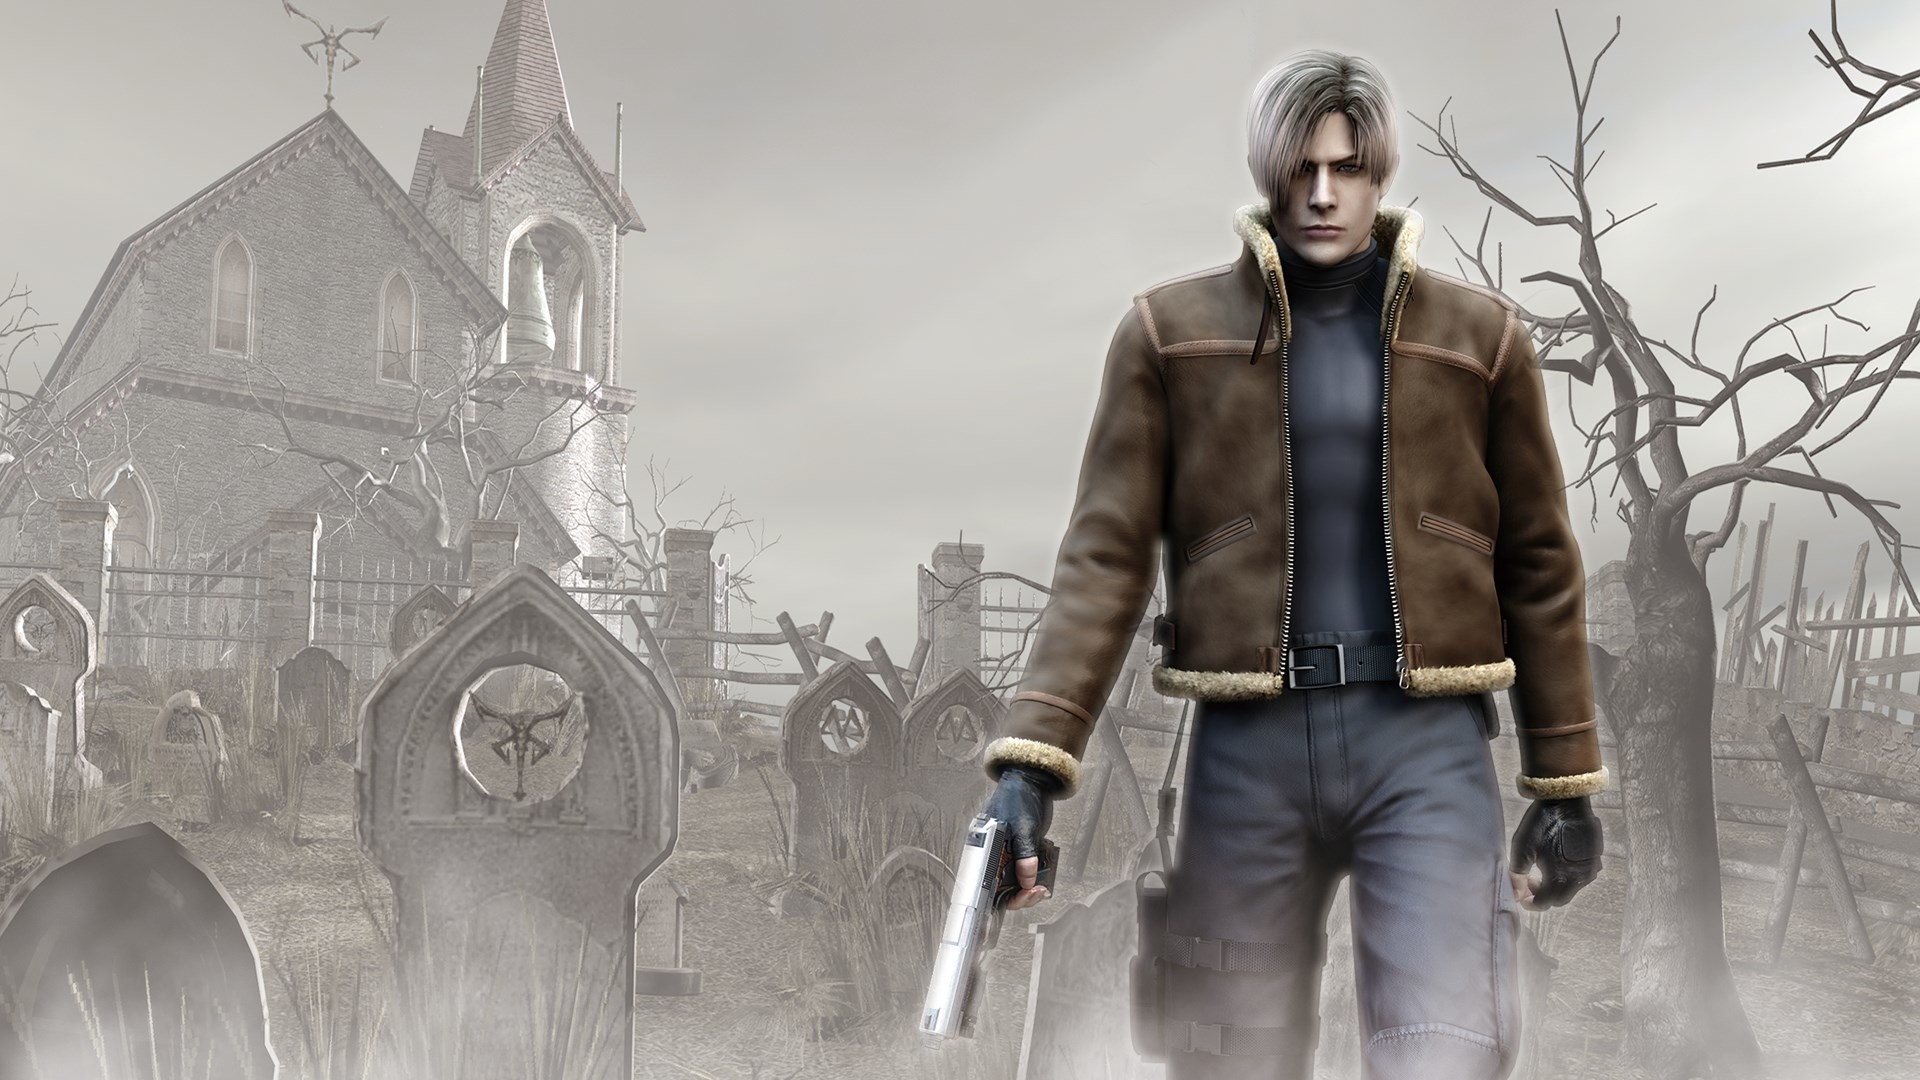 1680x1050 Resident Evil 4 Leon S. Kennedy 1680x1050 Resolution Wallpaper,  HD Games 4K Wallpapers, Images, Photos and Background